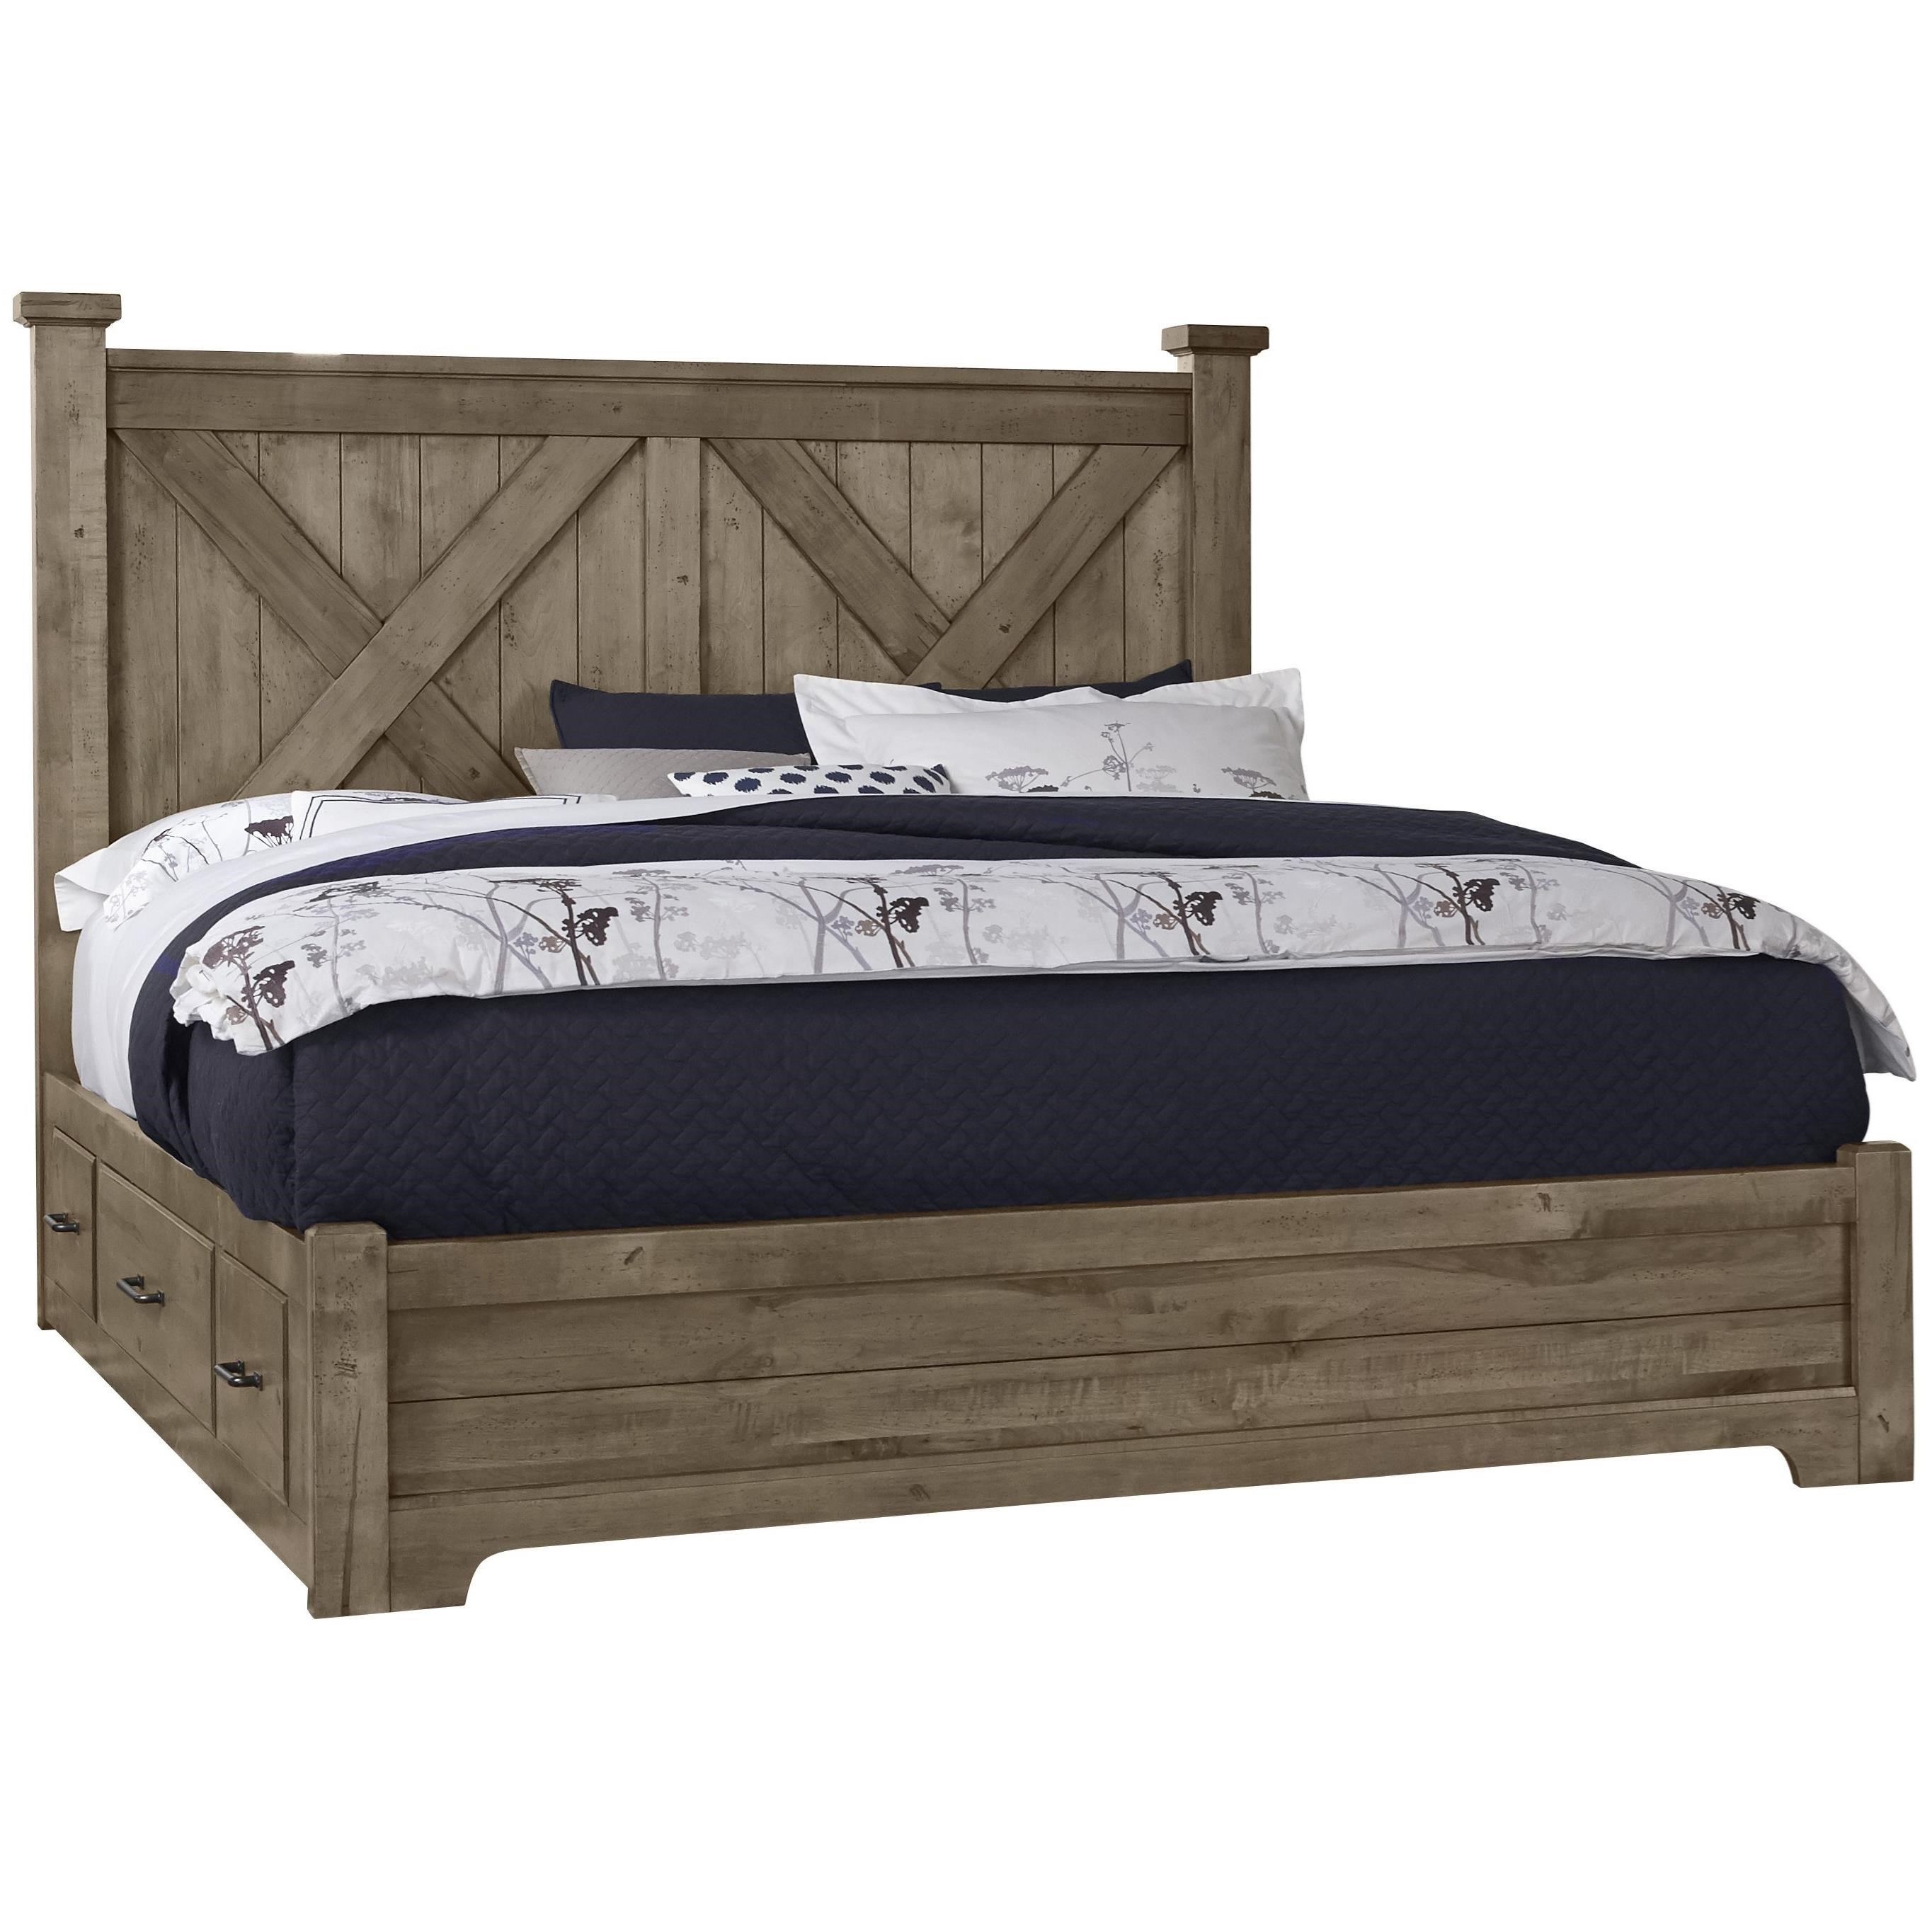 Cool Rustic Queen X Bed With Double Side Storage by Artisan & Post at Northeast Factory Direct